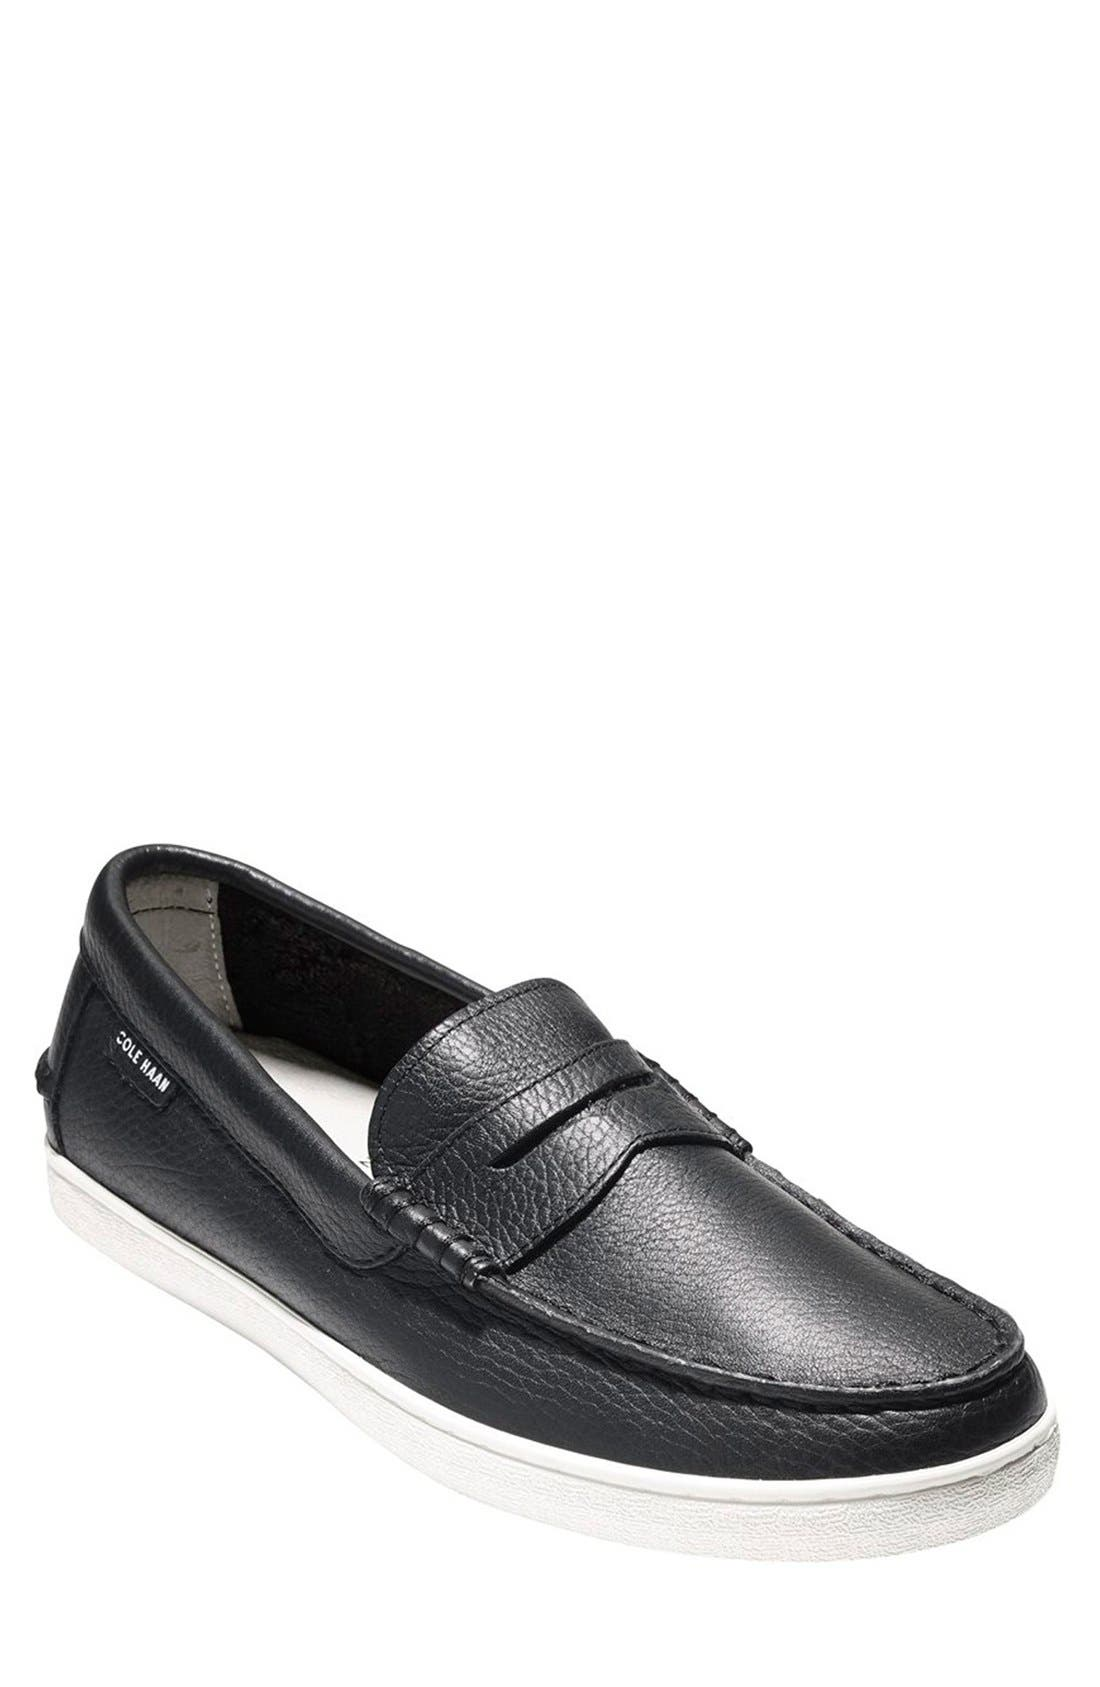 'Pinch' Penny Loafer,                             Alternate thumbnail 11, color,                             001